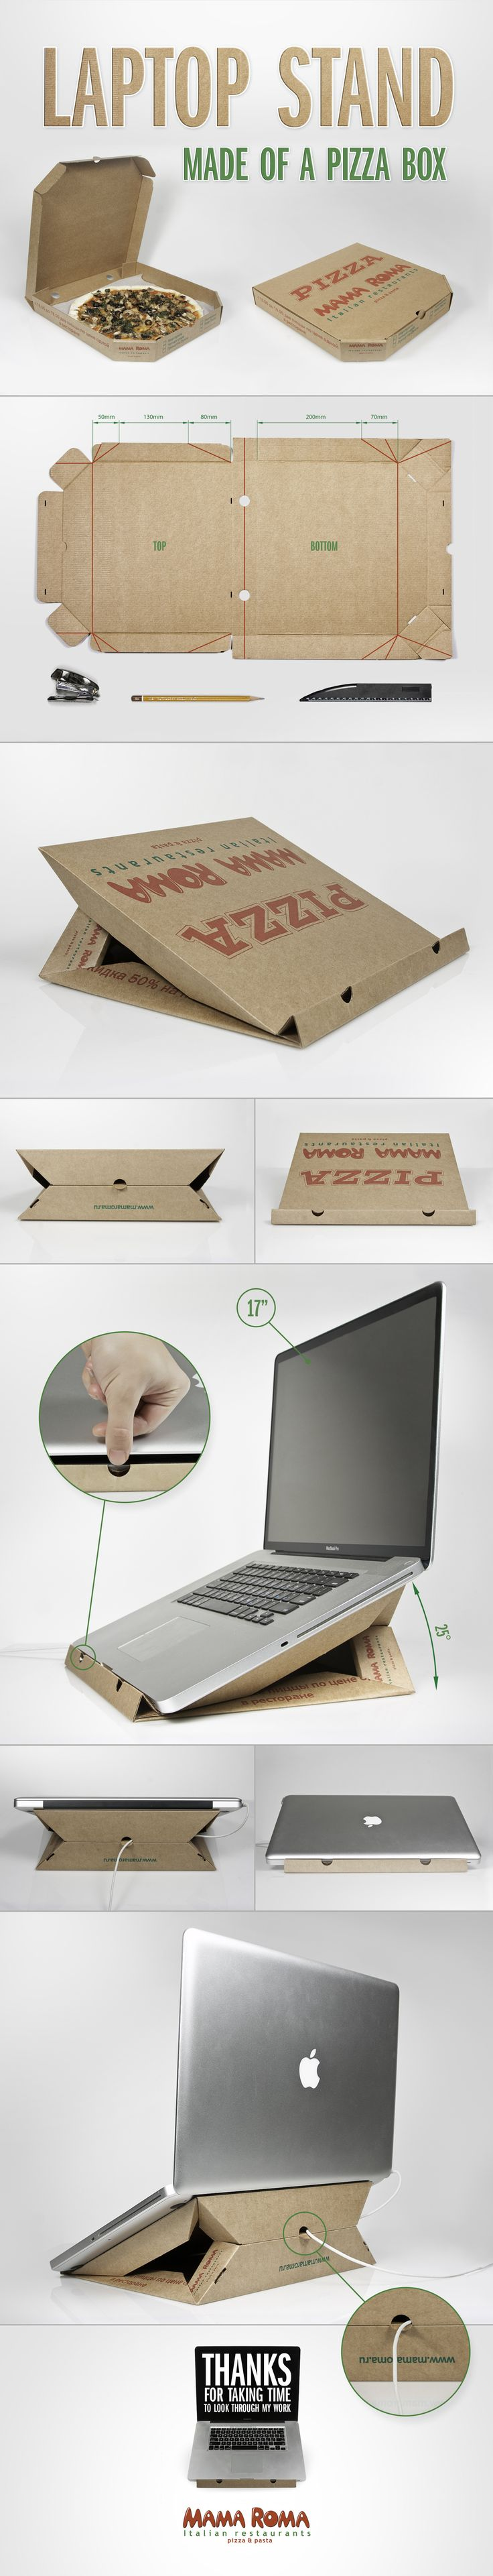 Laptop stand made of a pizza box on Behance